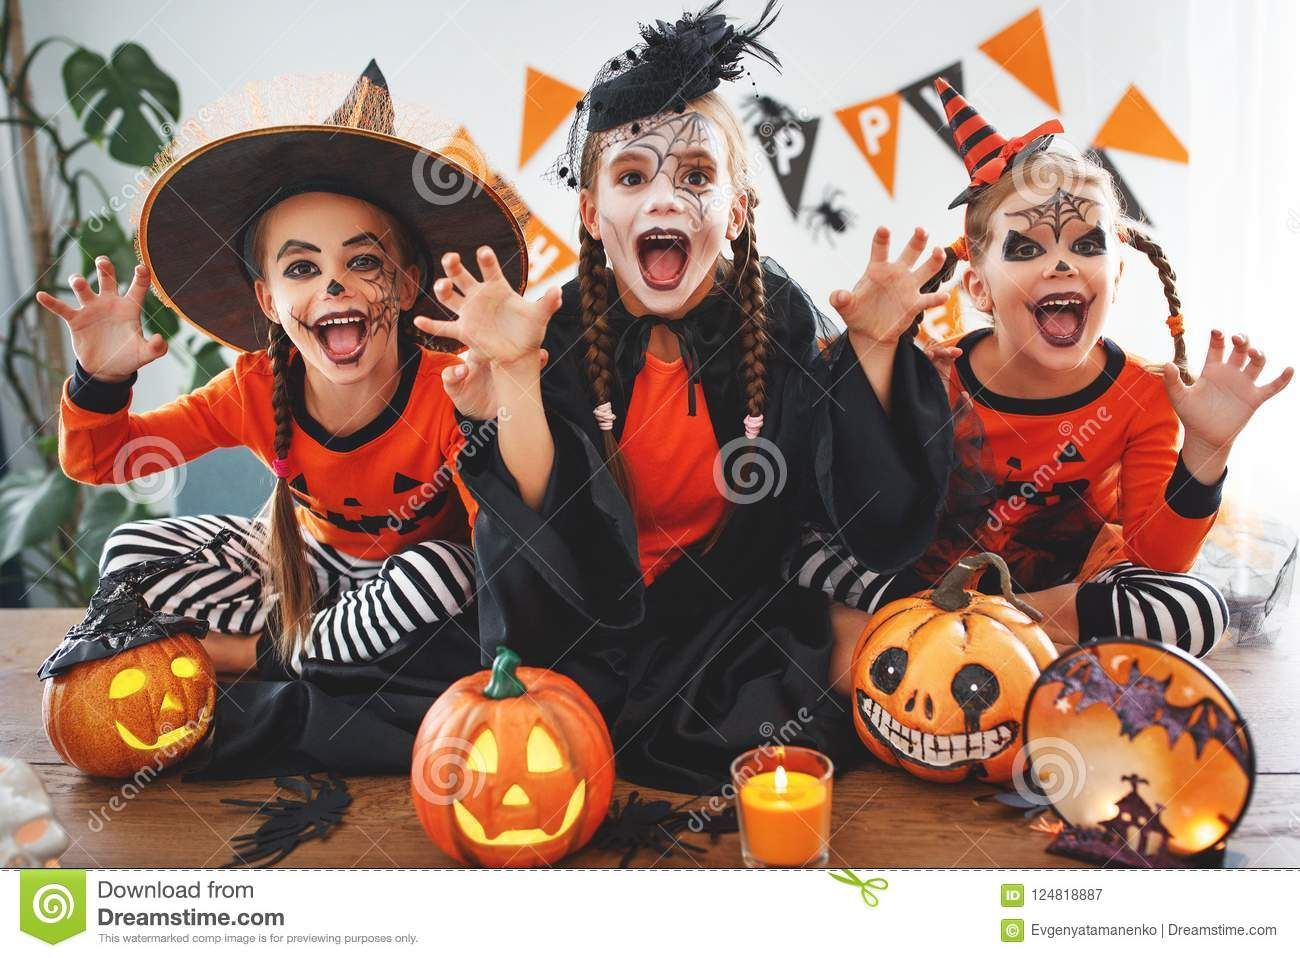 Happy Halloween A Group Of Children Celebrating Halloween Halloweencostumes Halloween Happy Halloween Cute Halloween